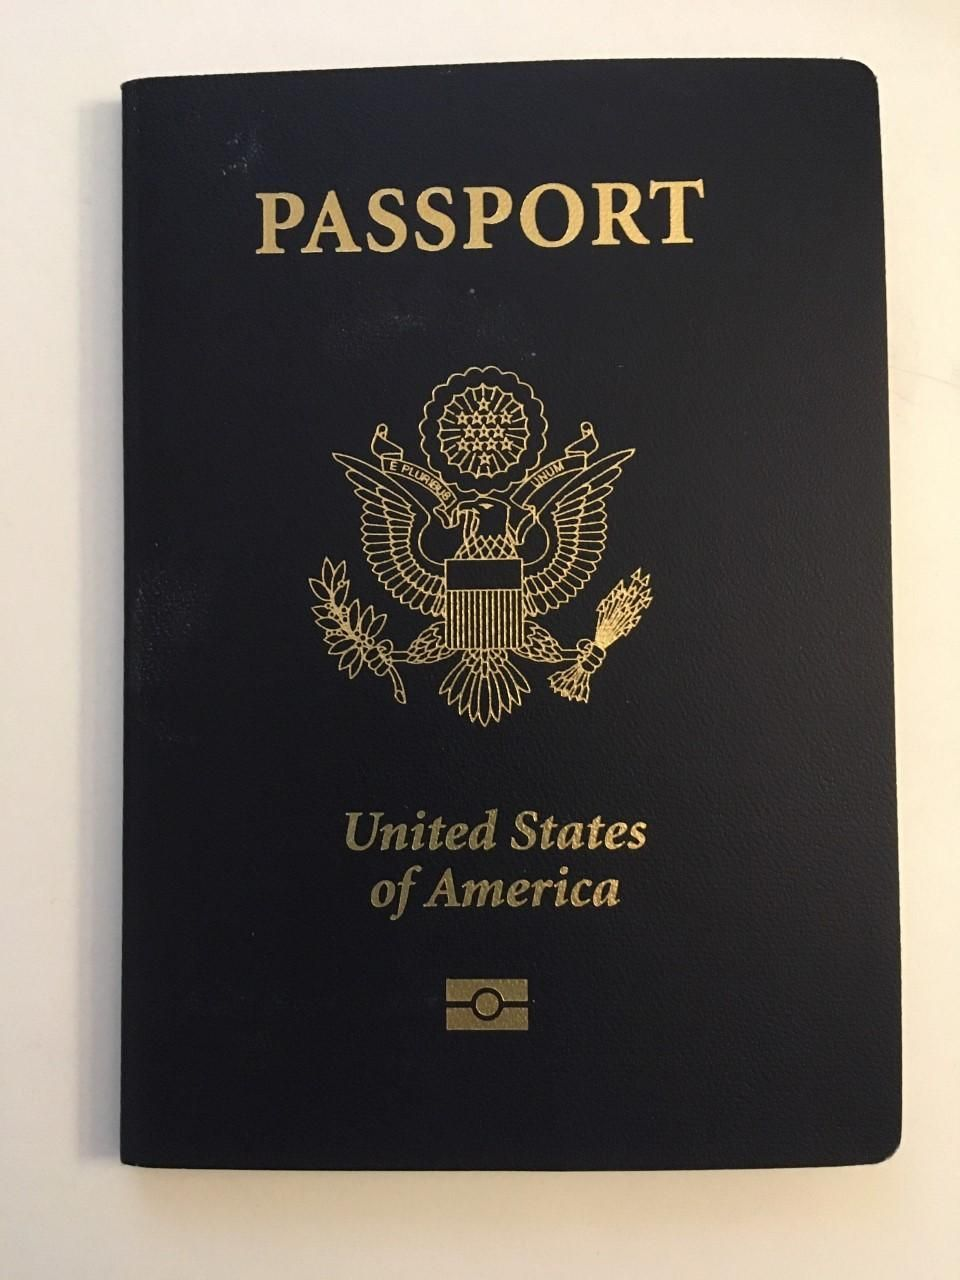 How Long Does It Take To Get A Passport In South Africa